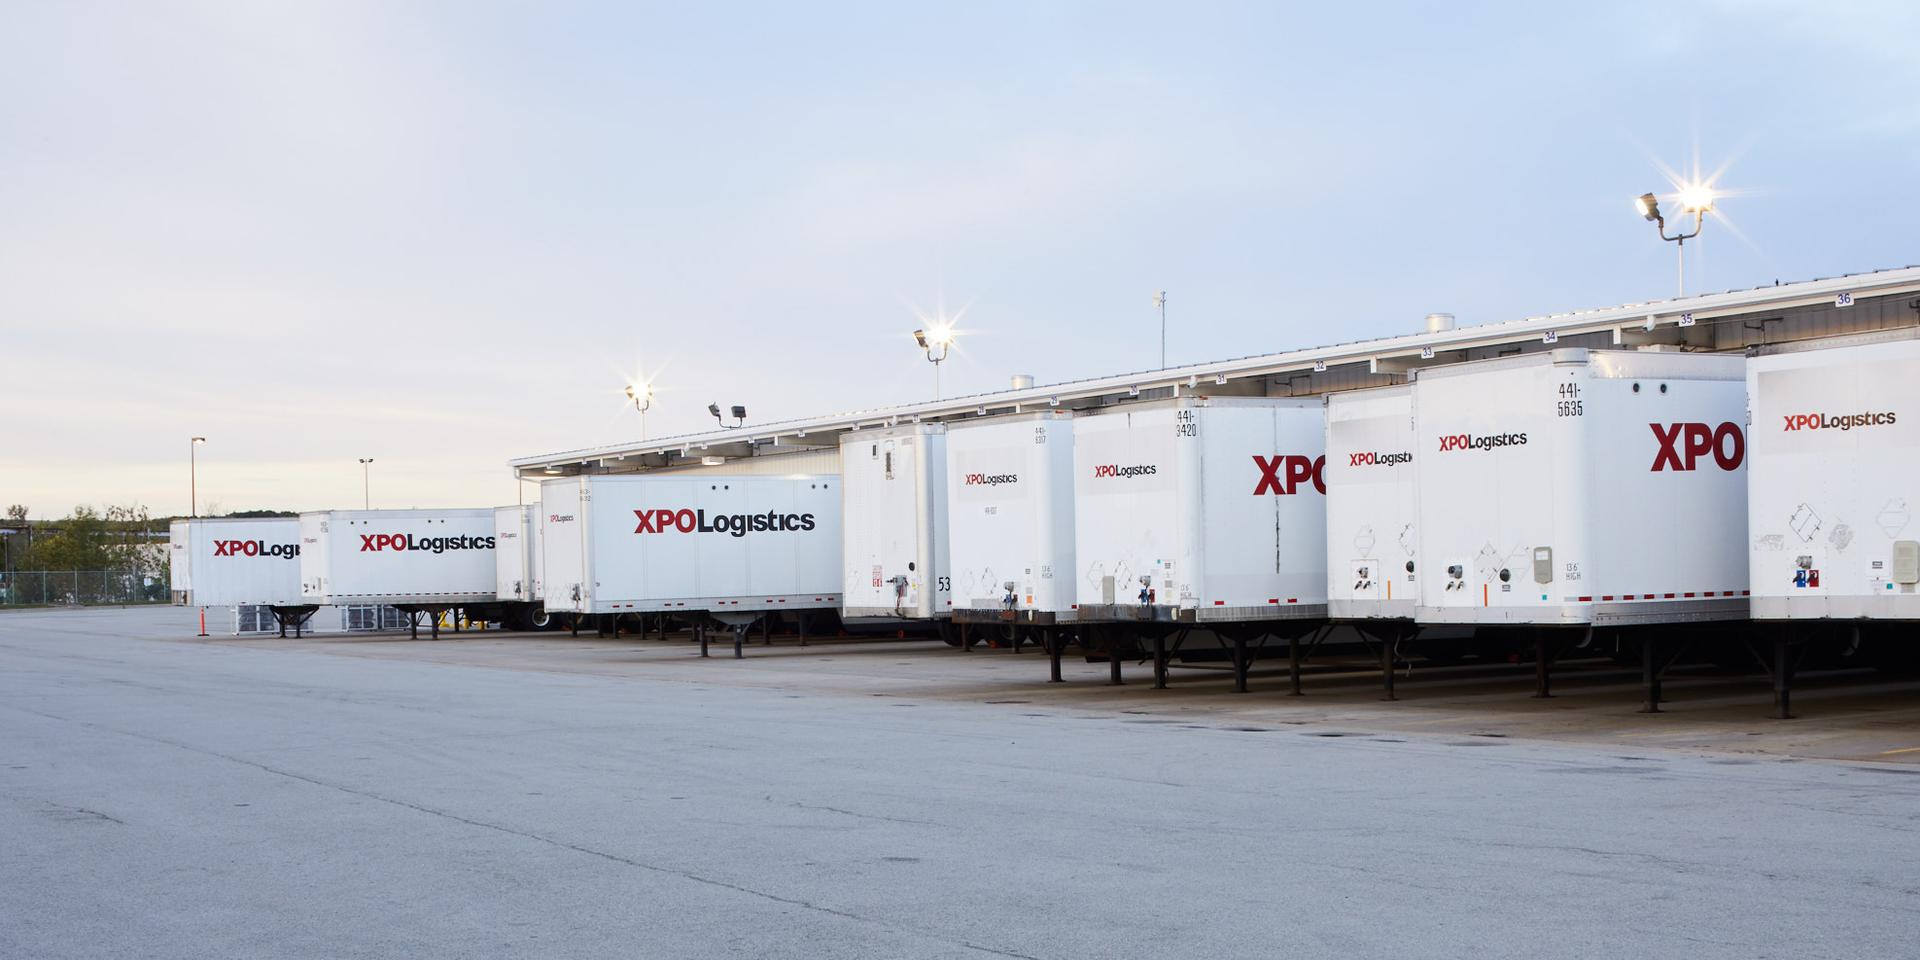 Row of XPO trailers